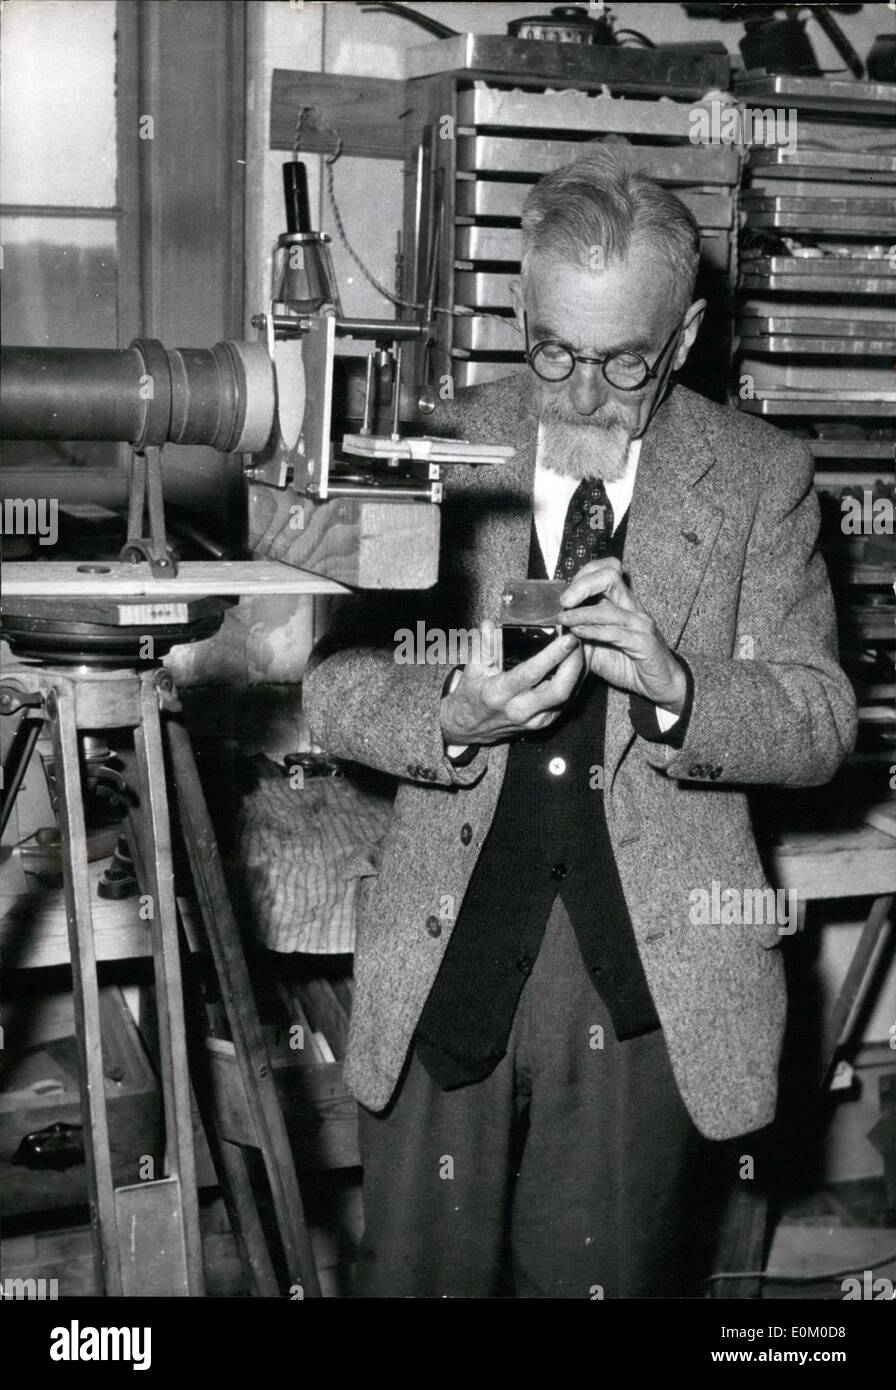 Feb. 02, 1953 - French Inventor Sells ''Cataphot'' Patent To 20th Century: Professor Henri Chretien Photographed In His Workshop-Laboratory At Nice.He Has Sold The Patent Of Cataphot (Films In Relief) To The 20th Century. - Stock Image